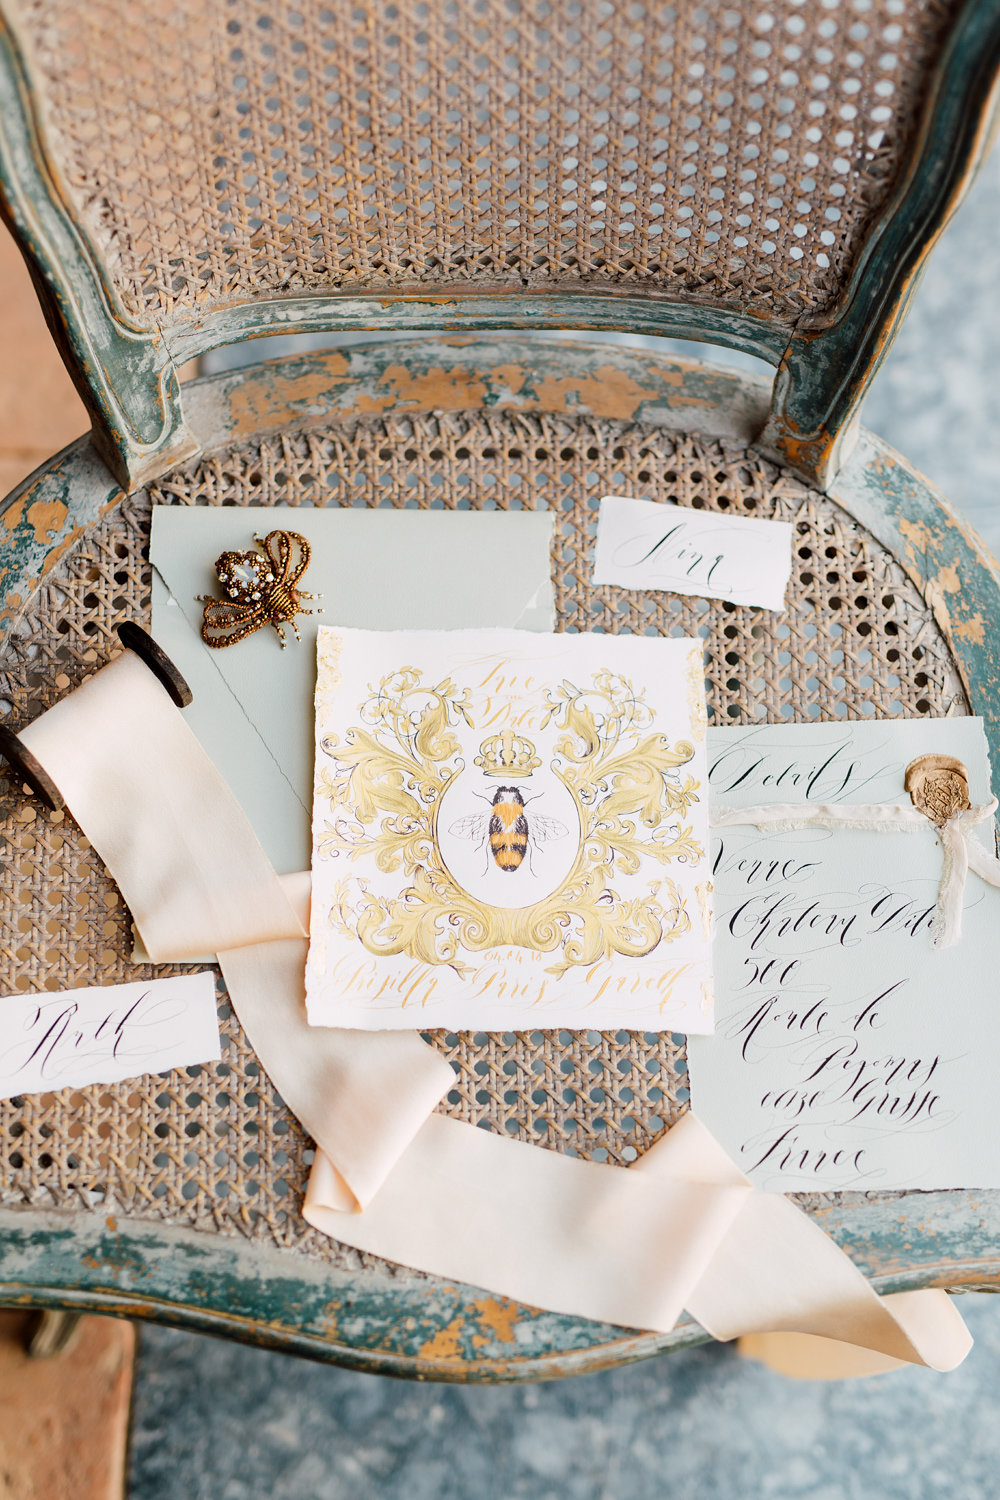 London Wedding Invitations with a save the date card with gold antique French bee design